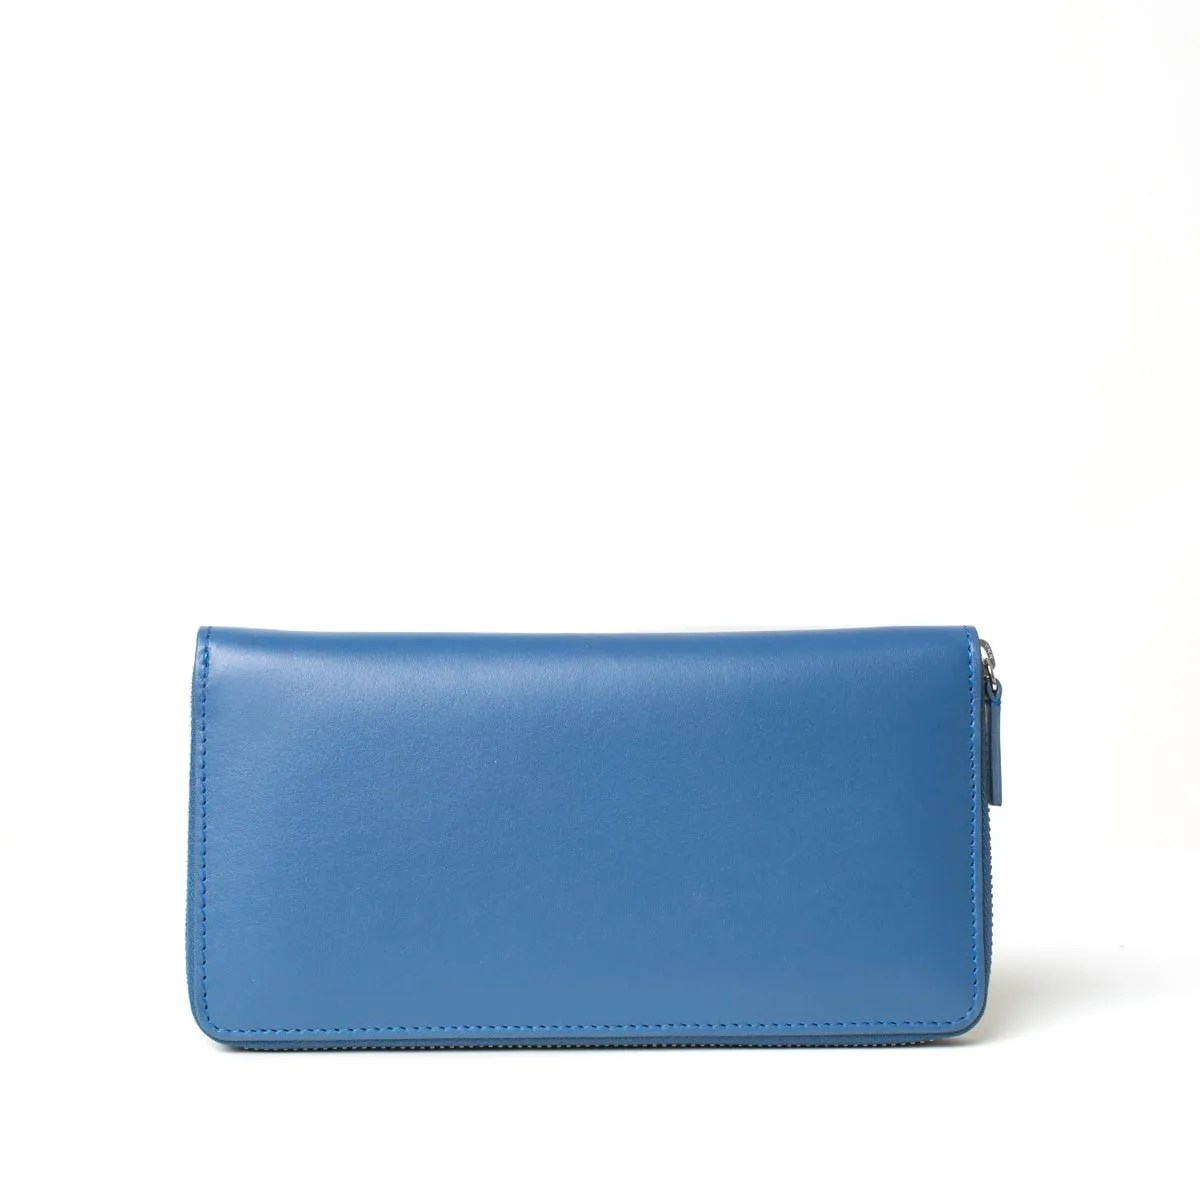 The Everlasting Wallet